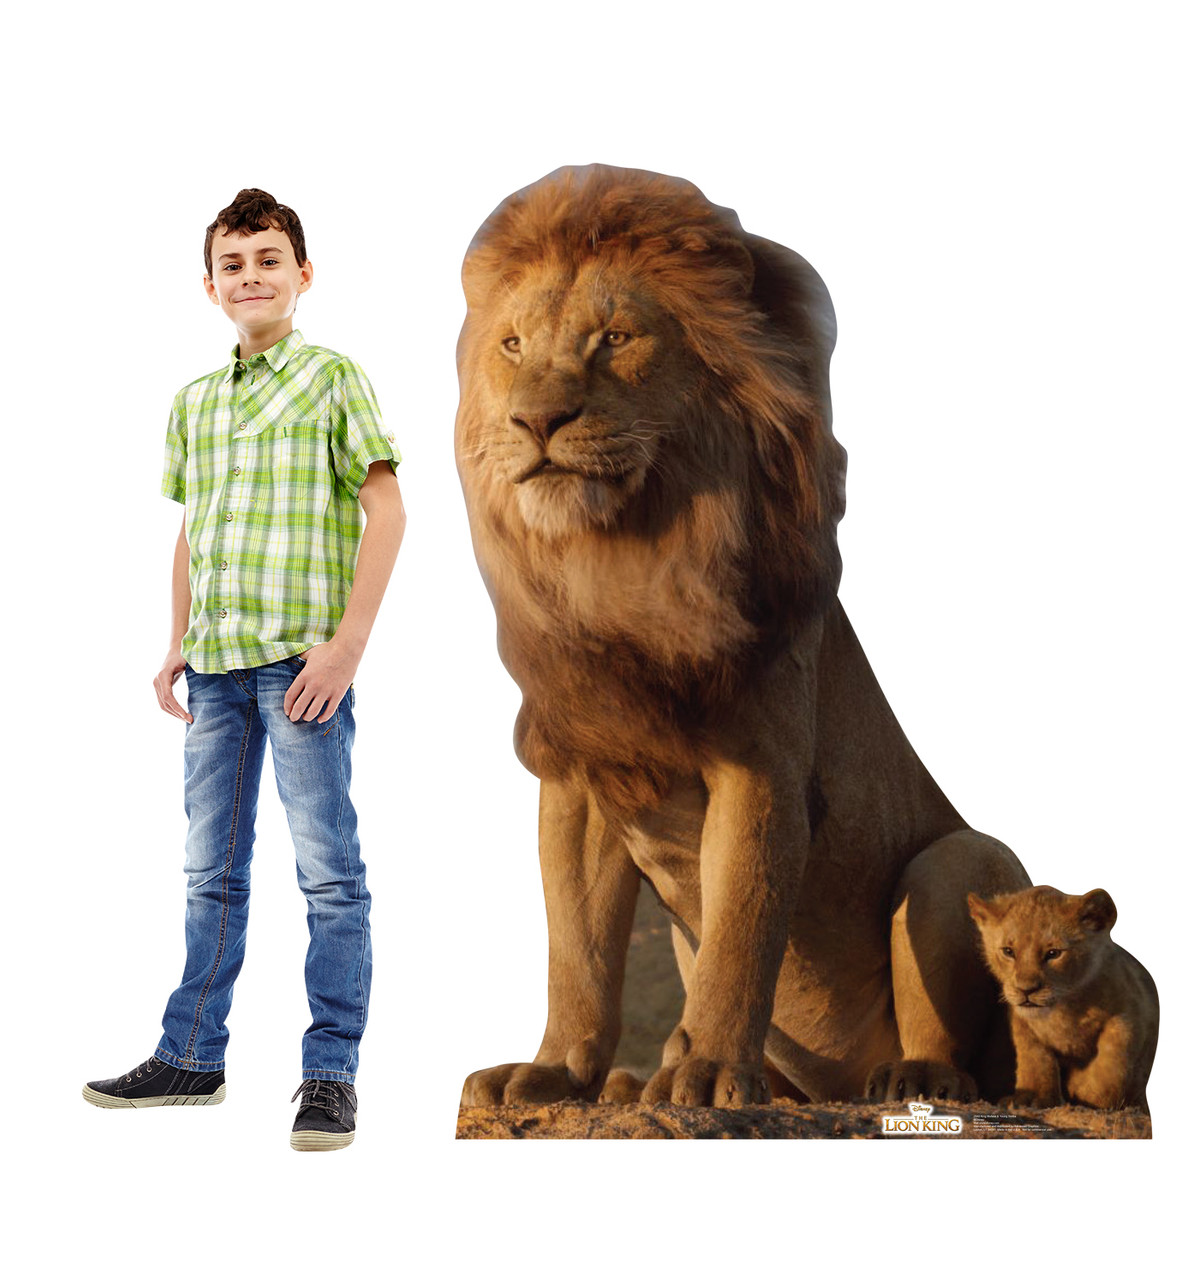 Life-size cardboard standee of King Mufasa and Young Simba from Disney's live action film The Lion King Lifesize